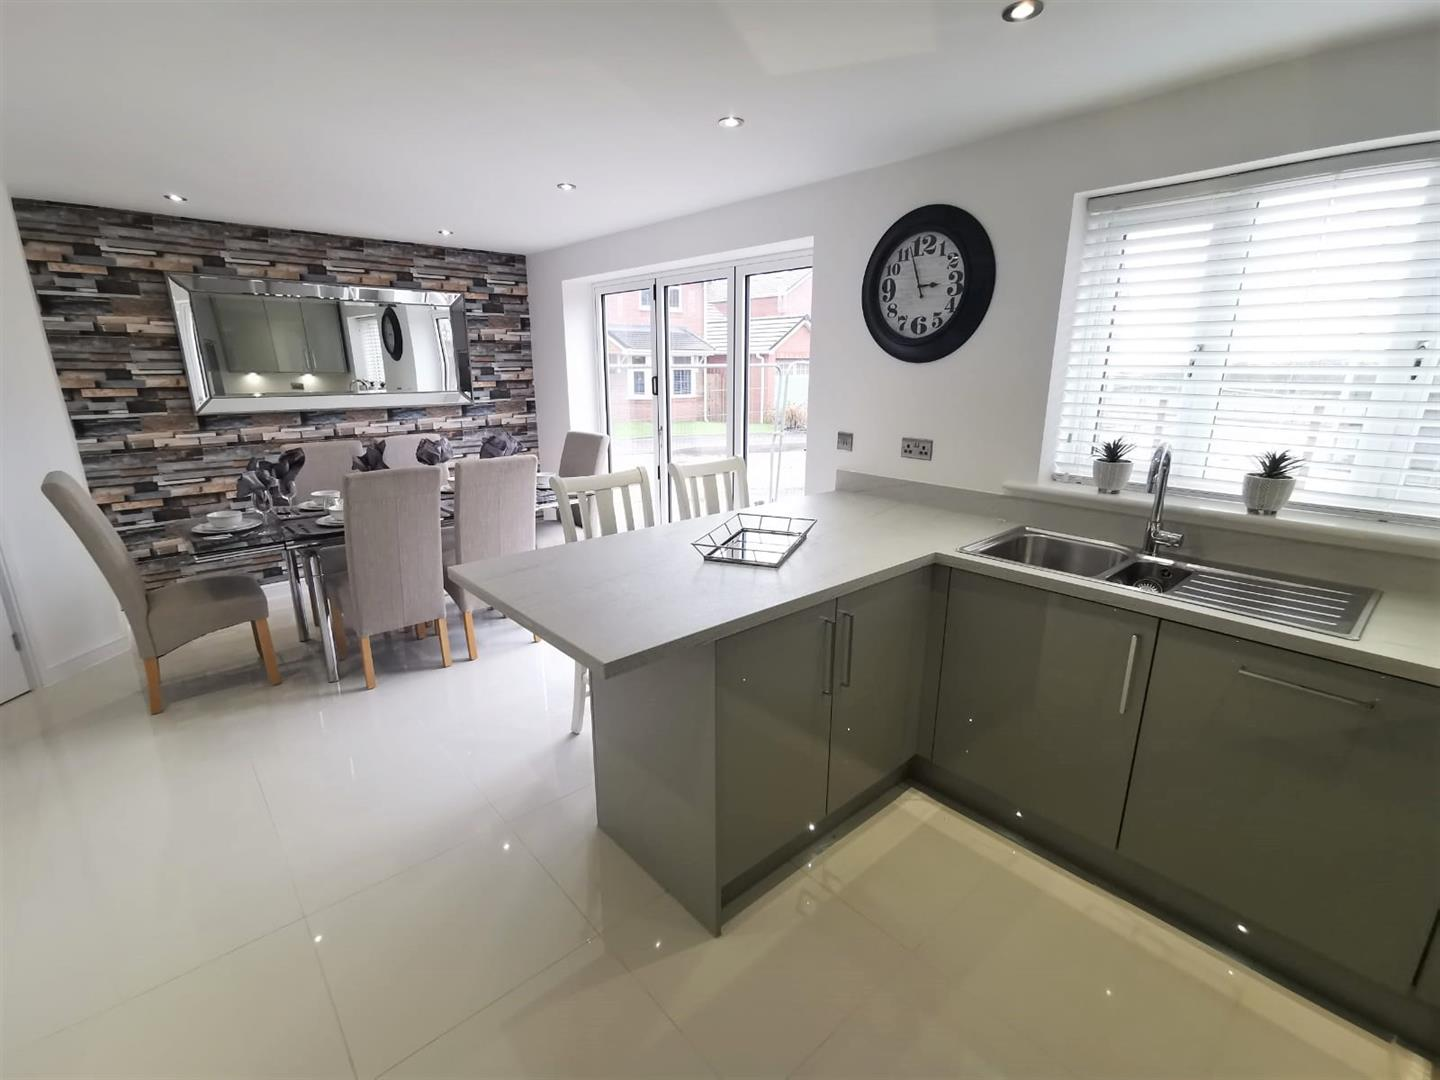 4 Bedrooms, House - Detached, The Mardale, Aintree Park, Aintree Village, Liverpool